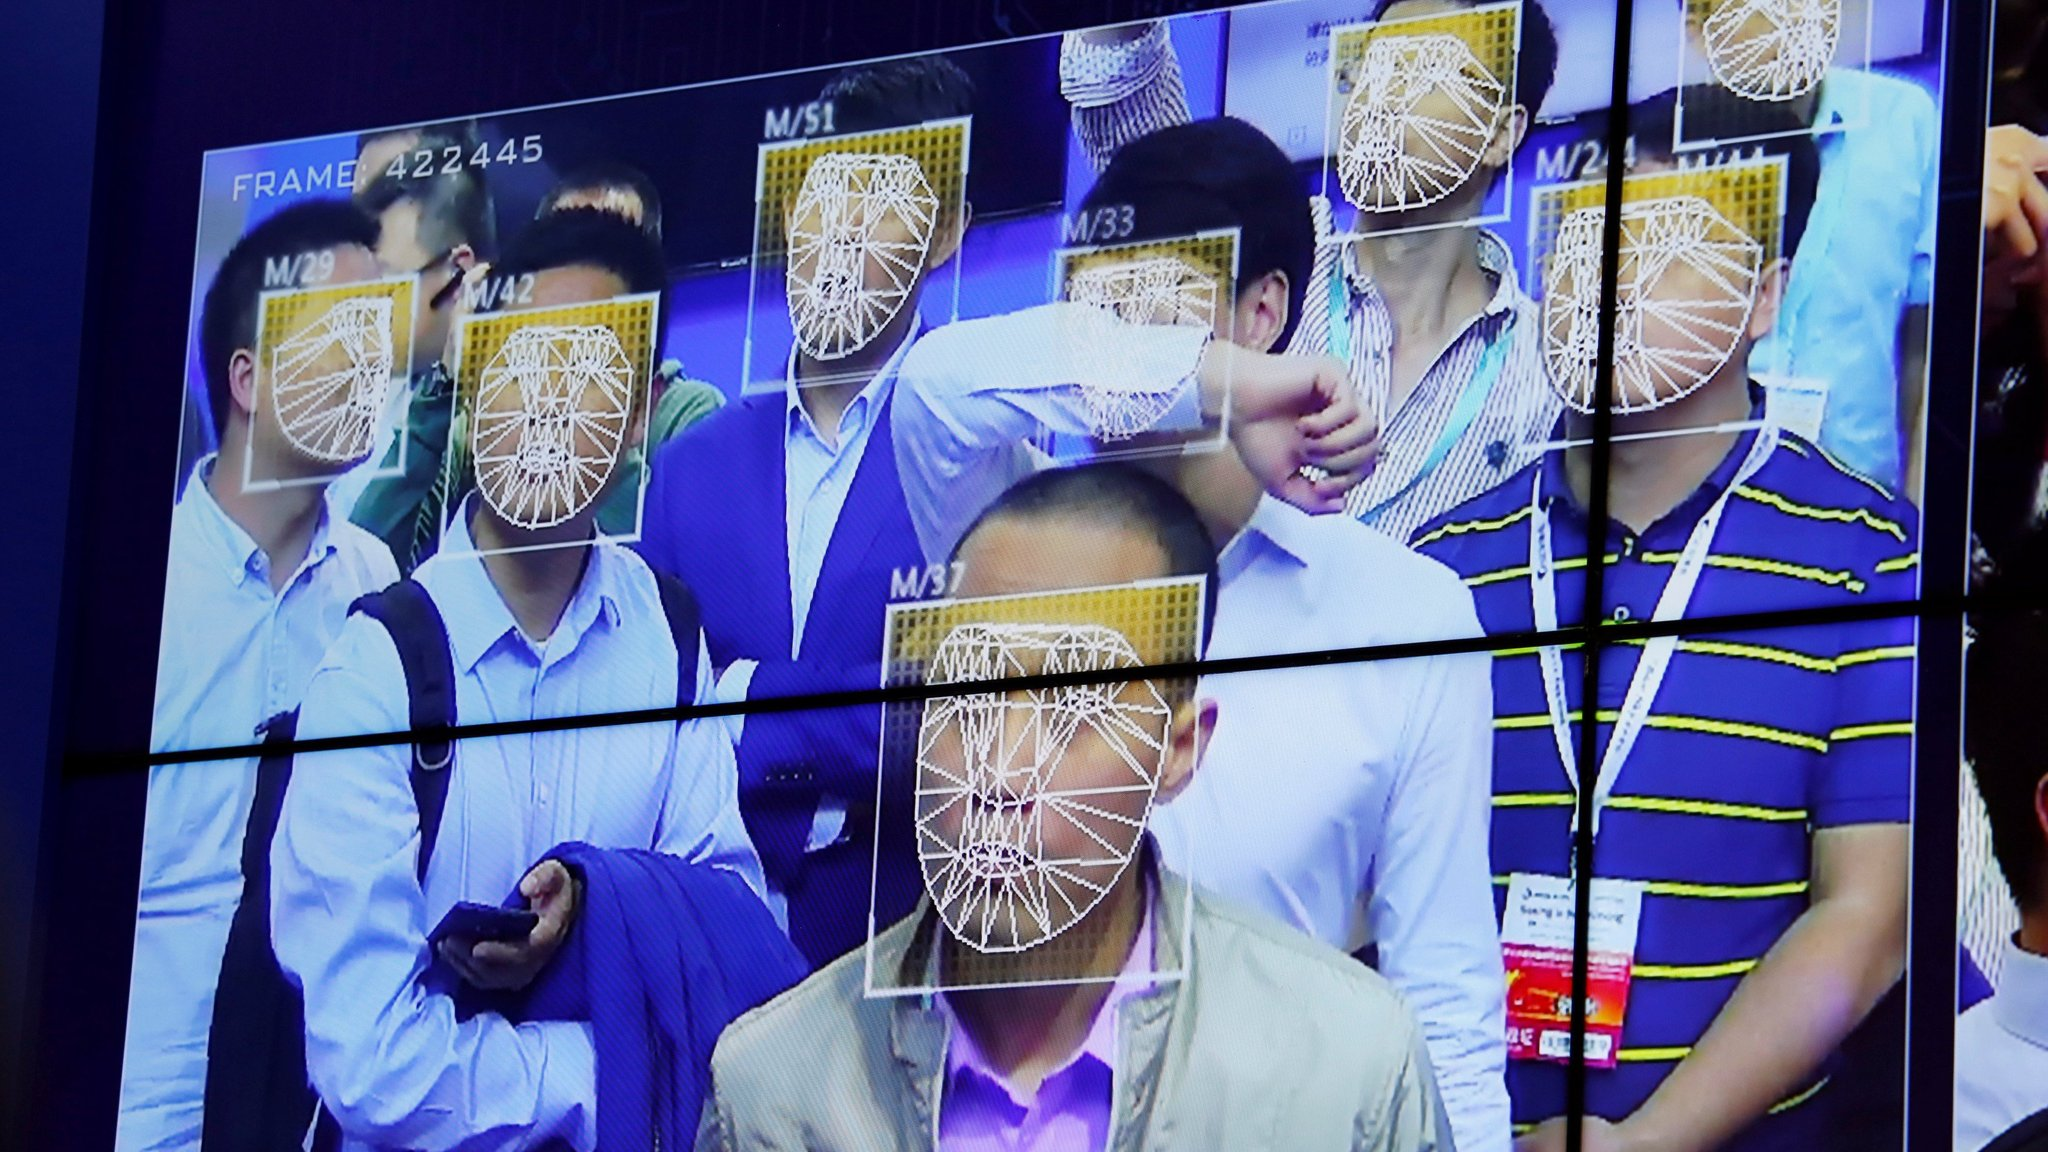 China's facial recognition start-ups gain edge over rivals